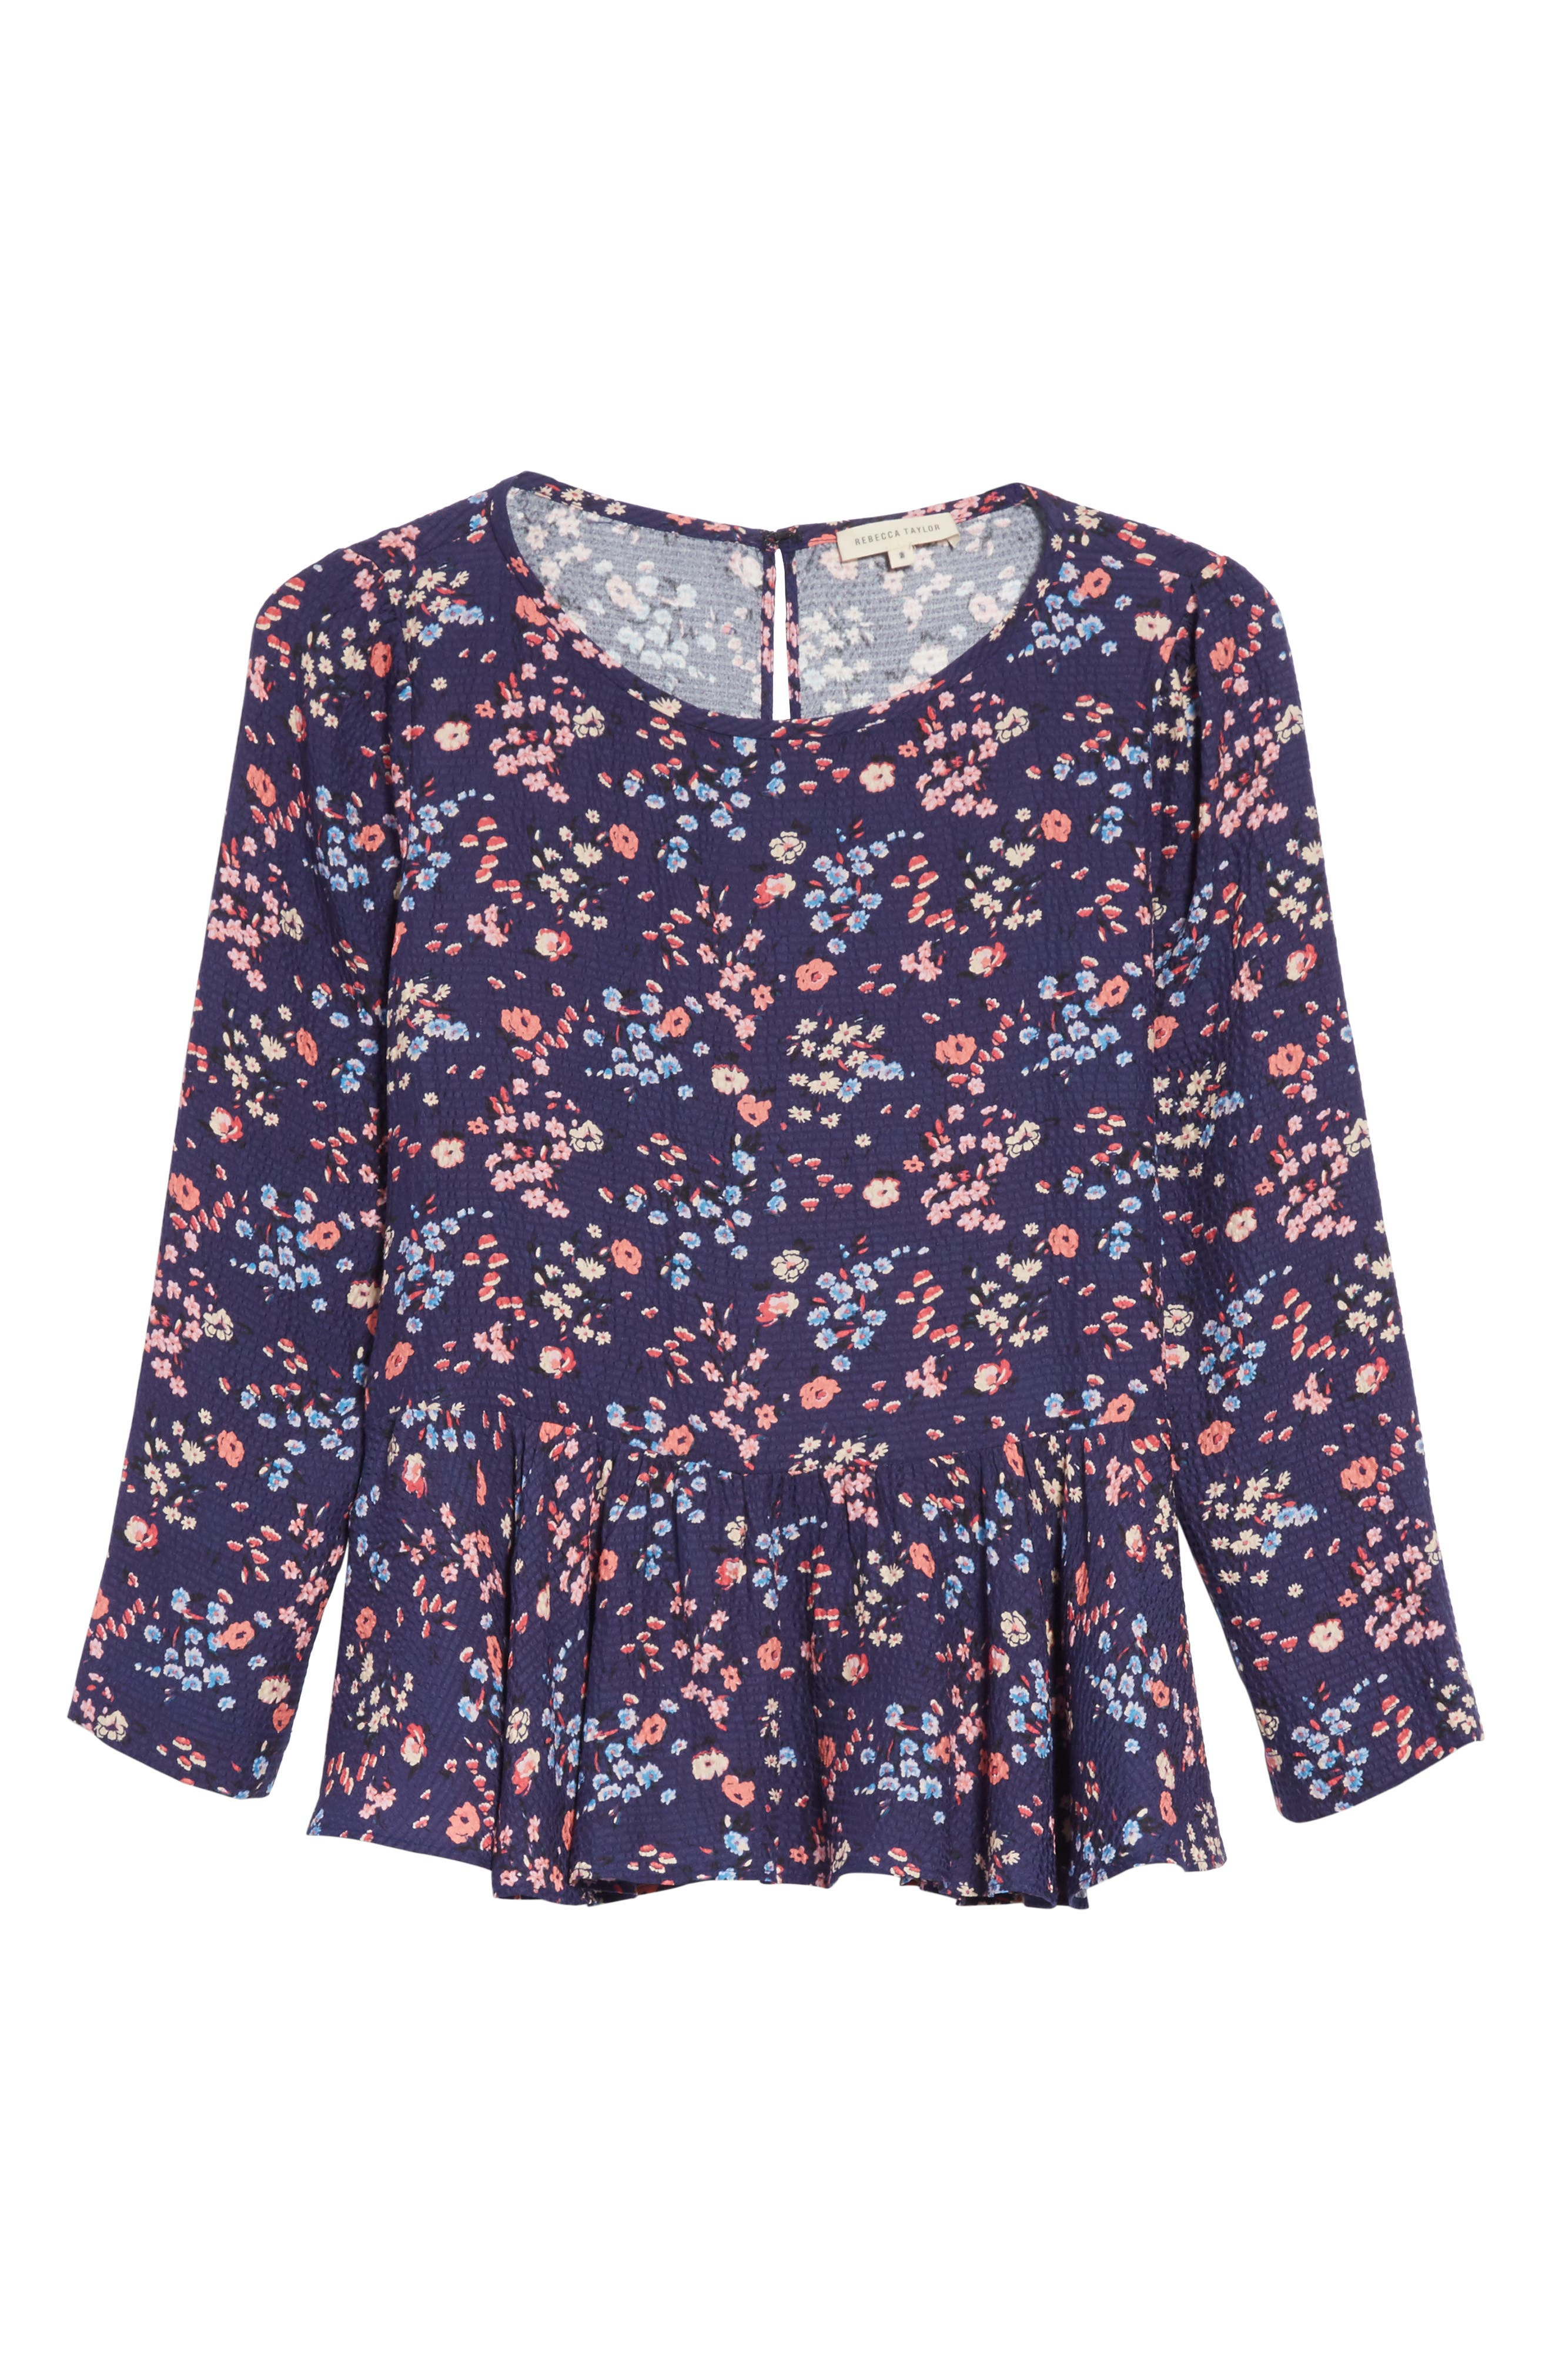 Woodland Floral Print Silk Top,                             Alternate thumbnail 6, color,                             565